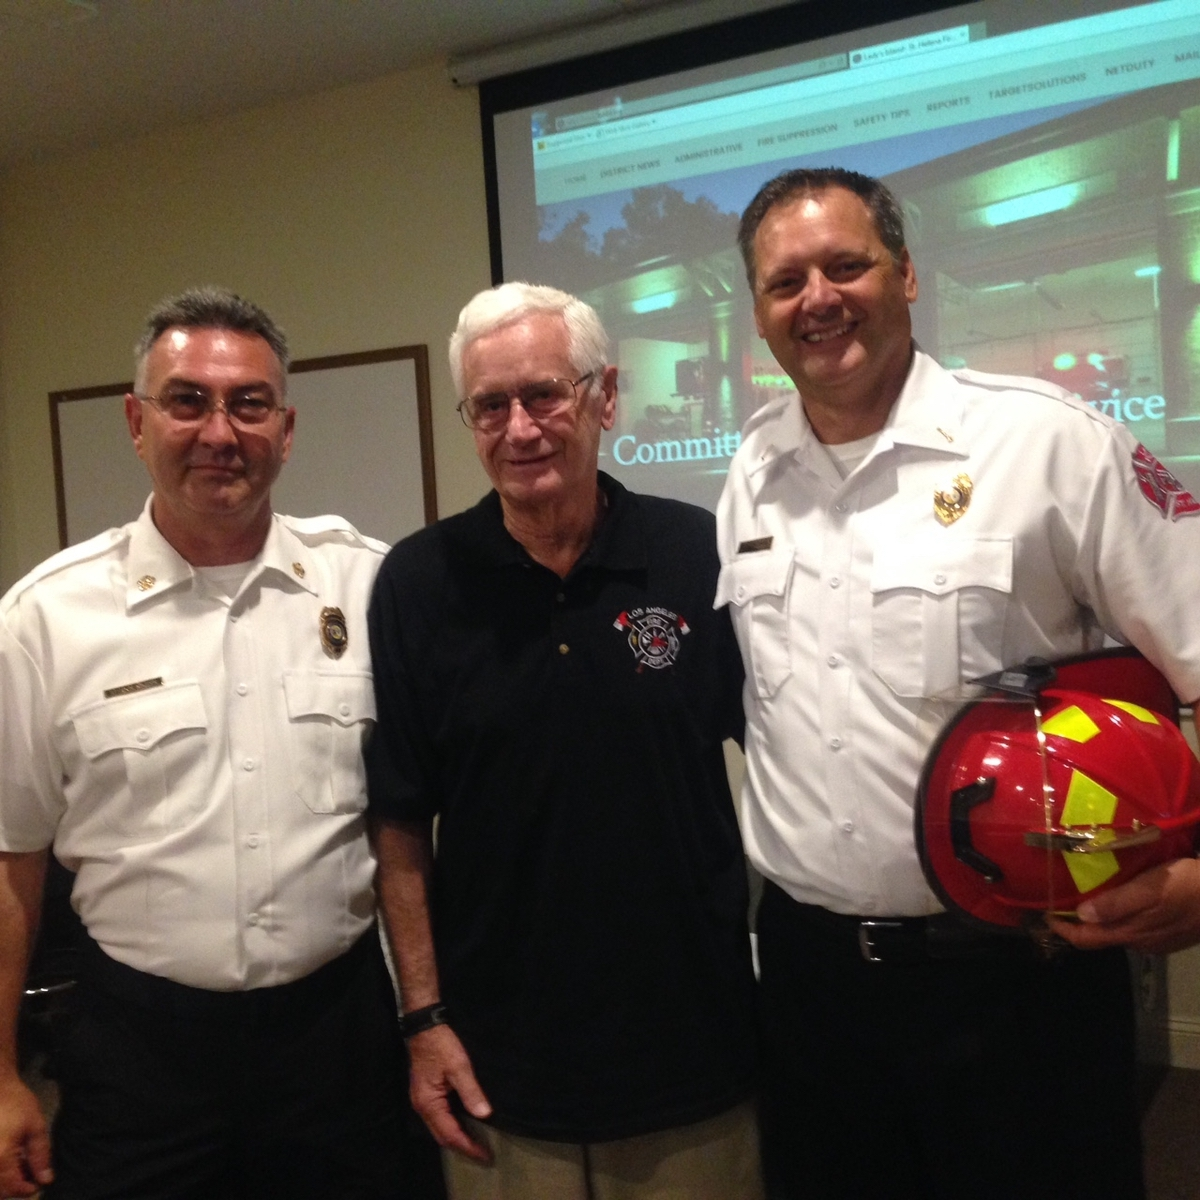 Scott Sampson, right, of the Lady's Island St. Helena Fire District, was recently promoted from senior firefighter to lieutenant. Sampson is accompanied by Chief Bruce Kline, left, and his father, Johnny Sampson, who retired in 1988 after 30 years service with the Los Angeles Fire Department.